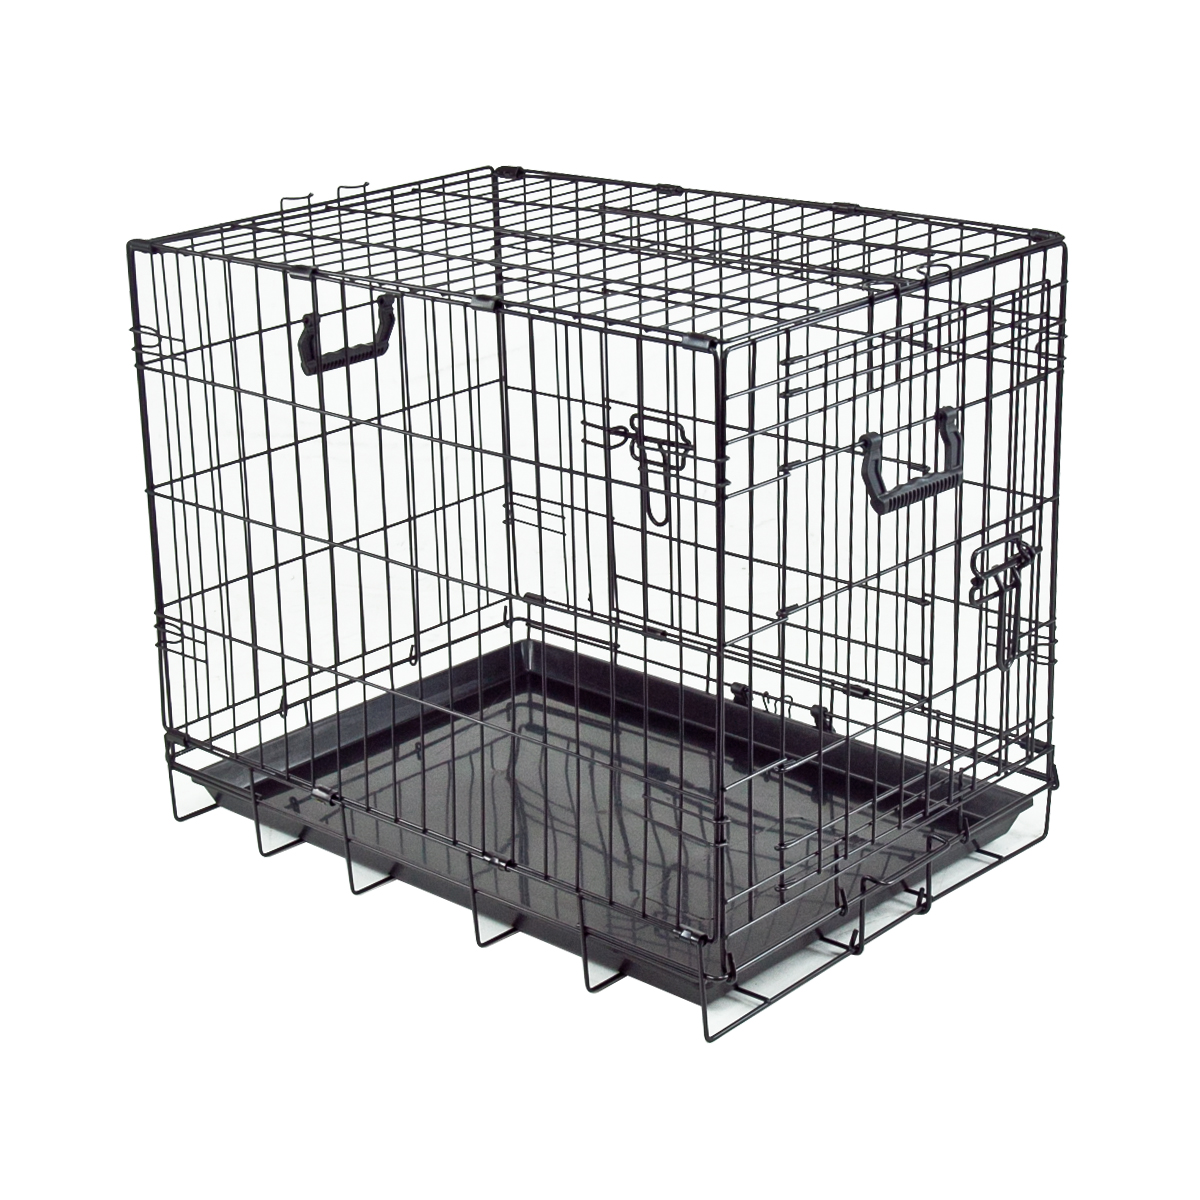 Portable Dog Kennels : Dog cage crate kennel pet cat metal folding portable puppy